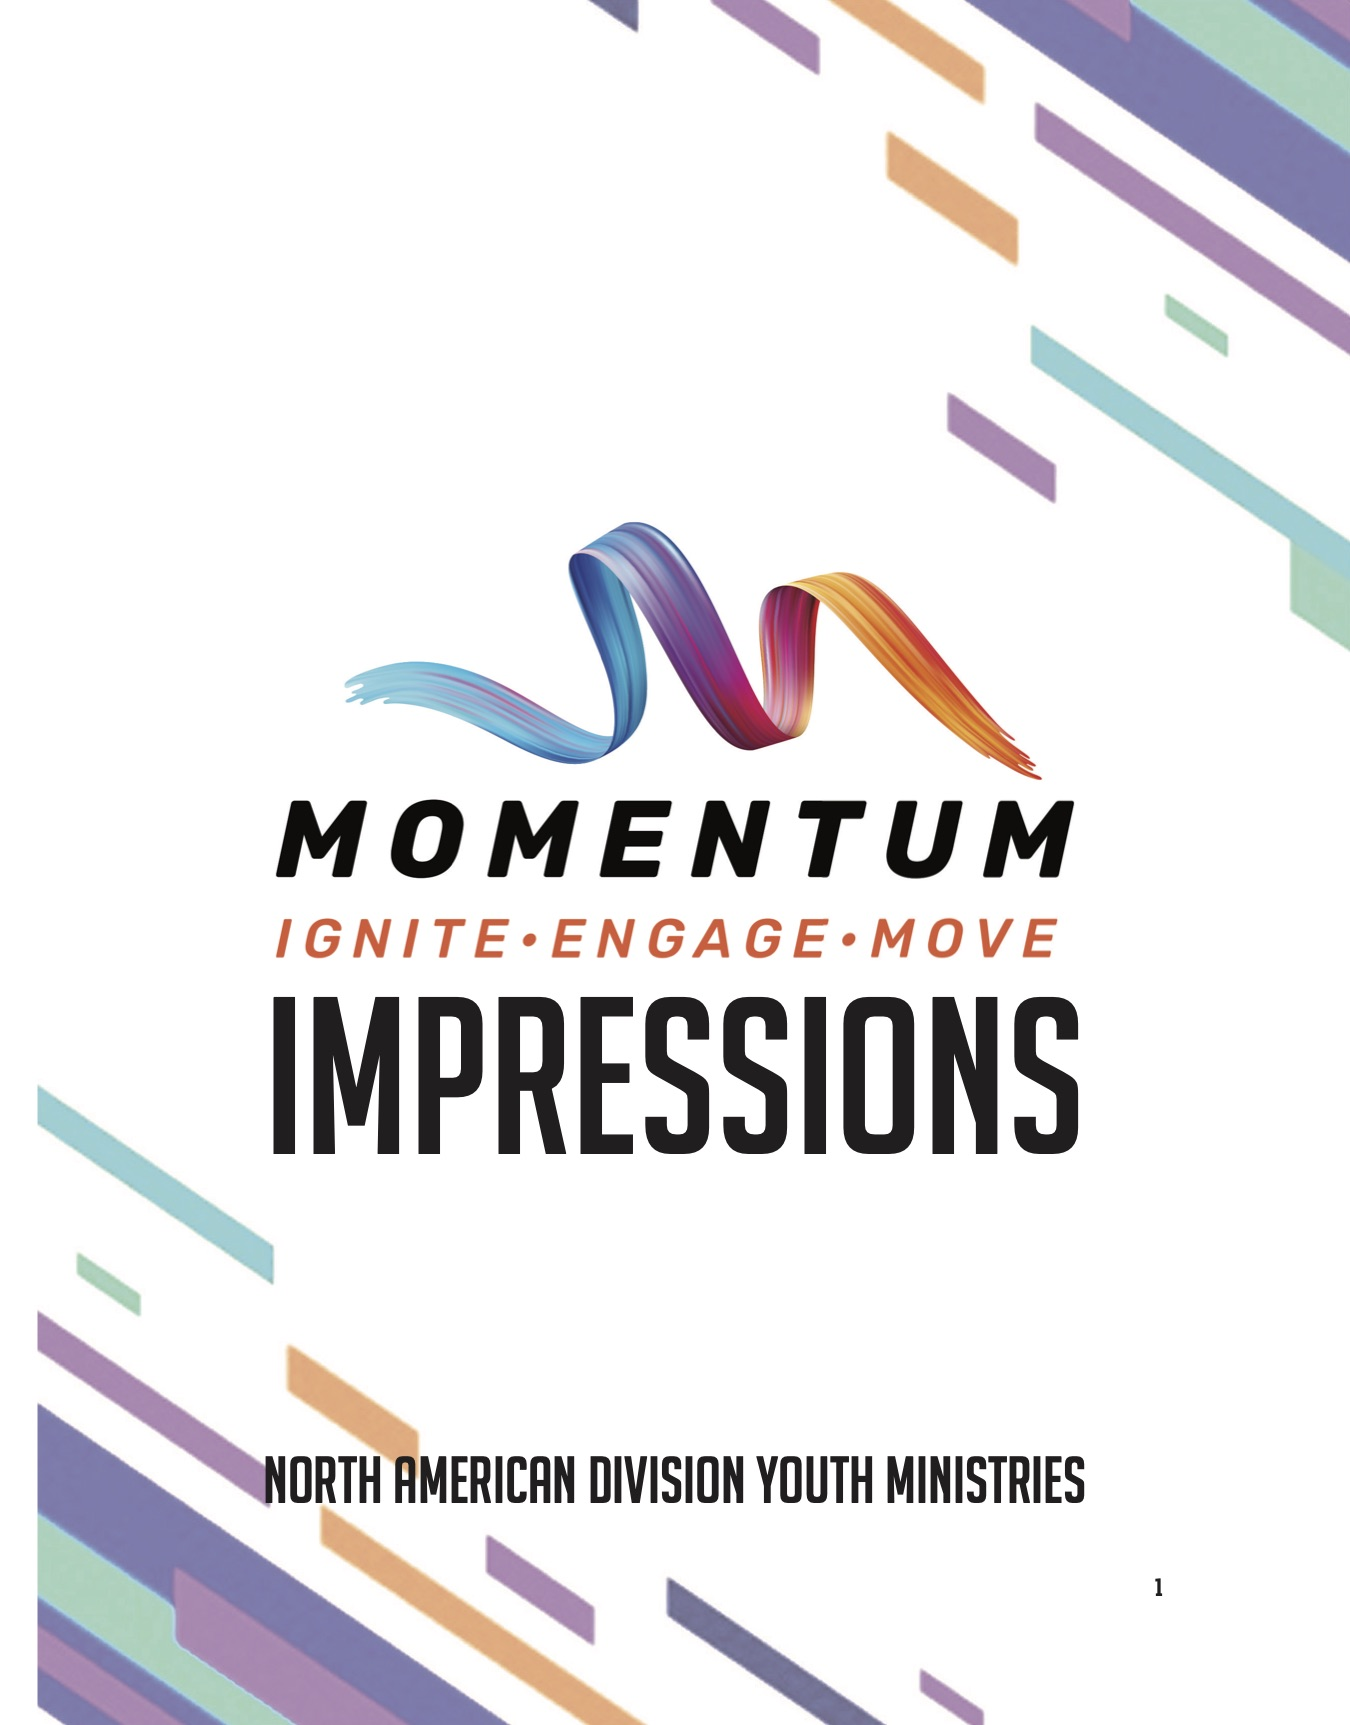 North American Division Youth Ministries